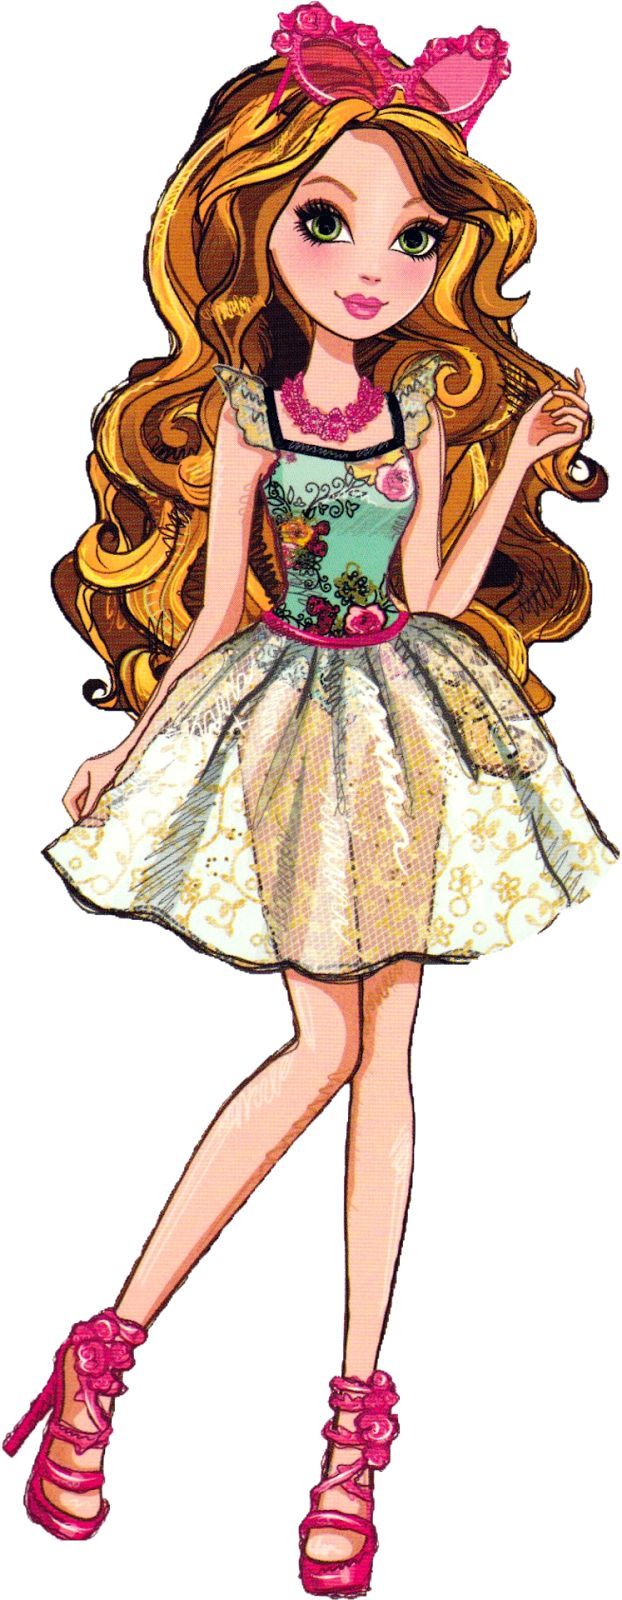 Doll clipart ever after high After High Find on 216